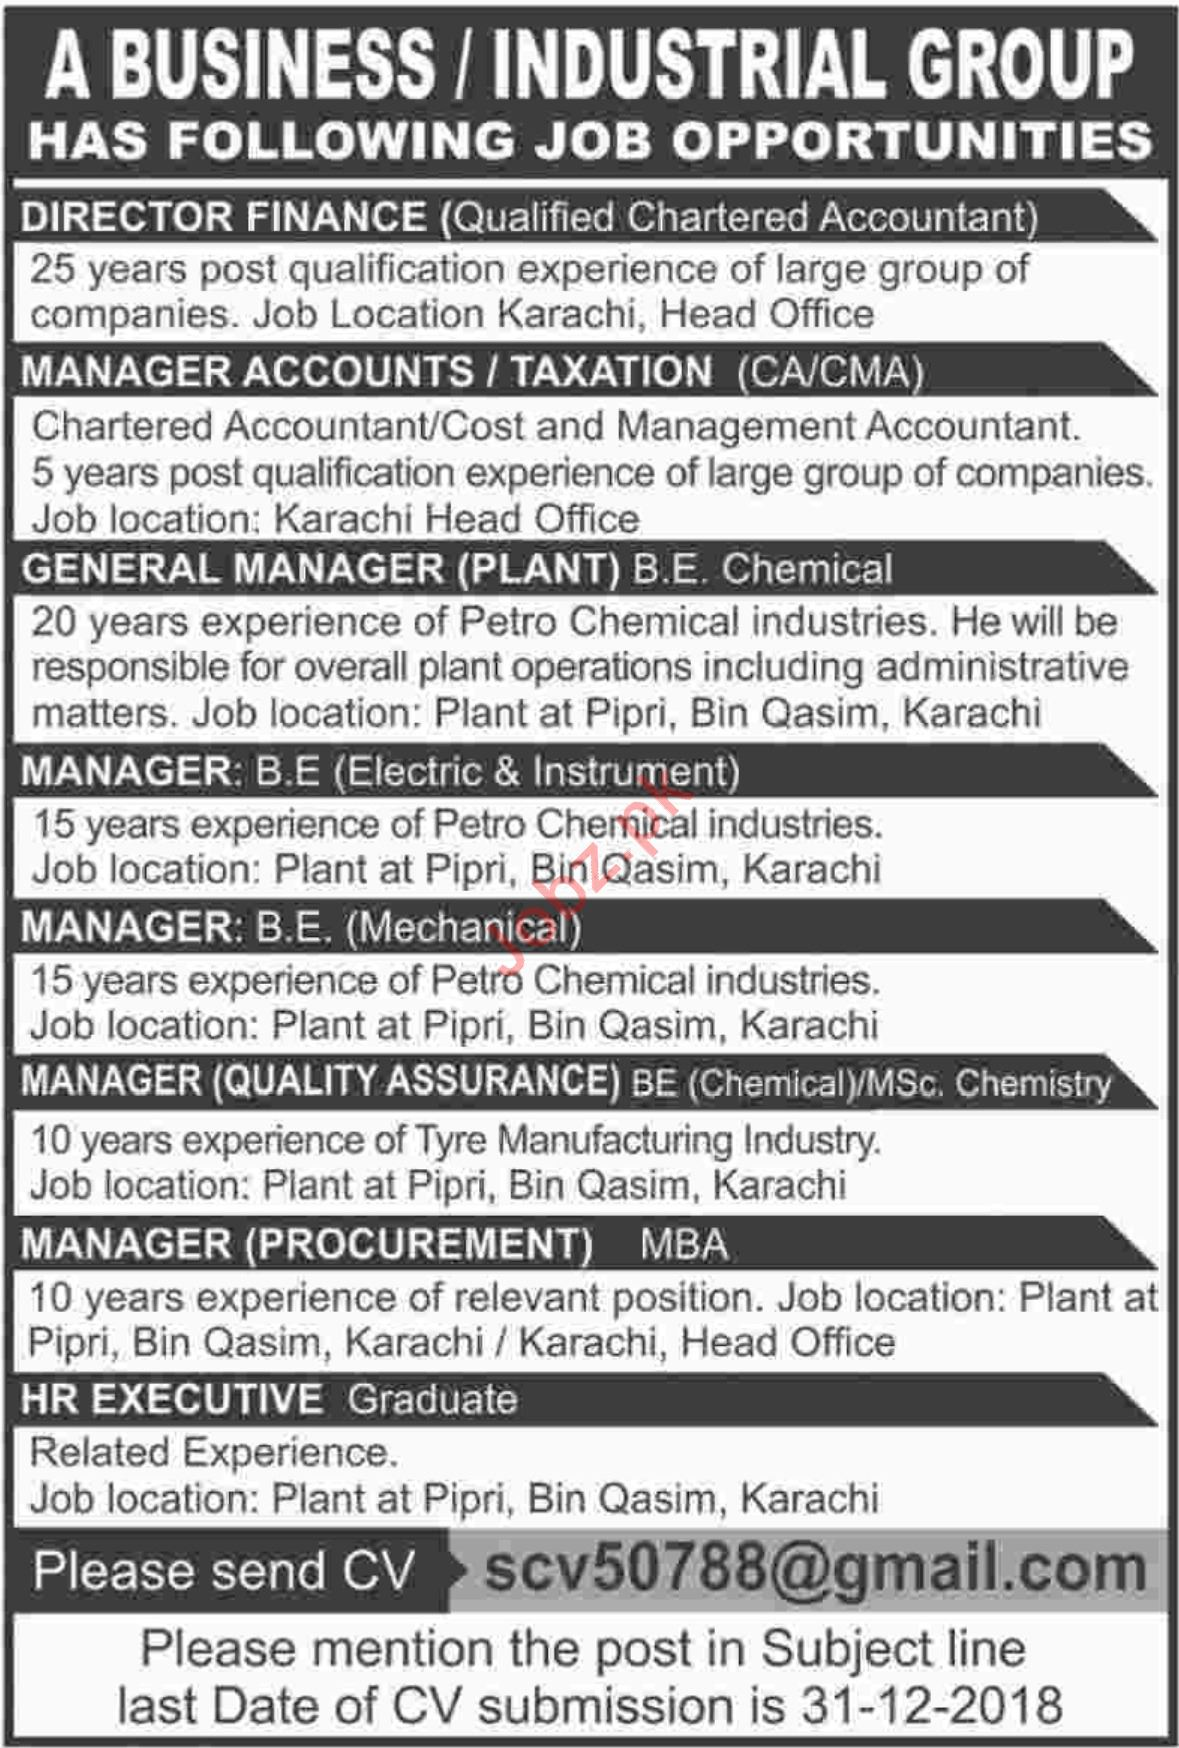 Director Finance Jobs at Industrial Group